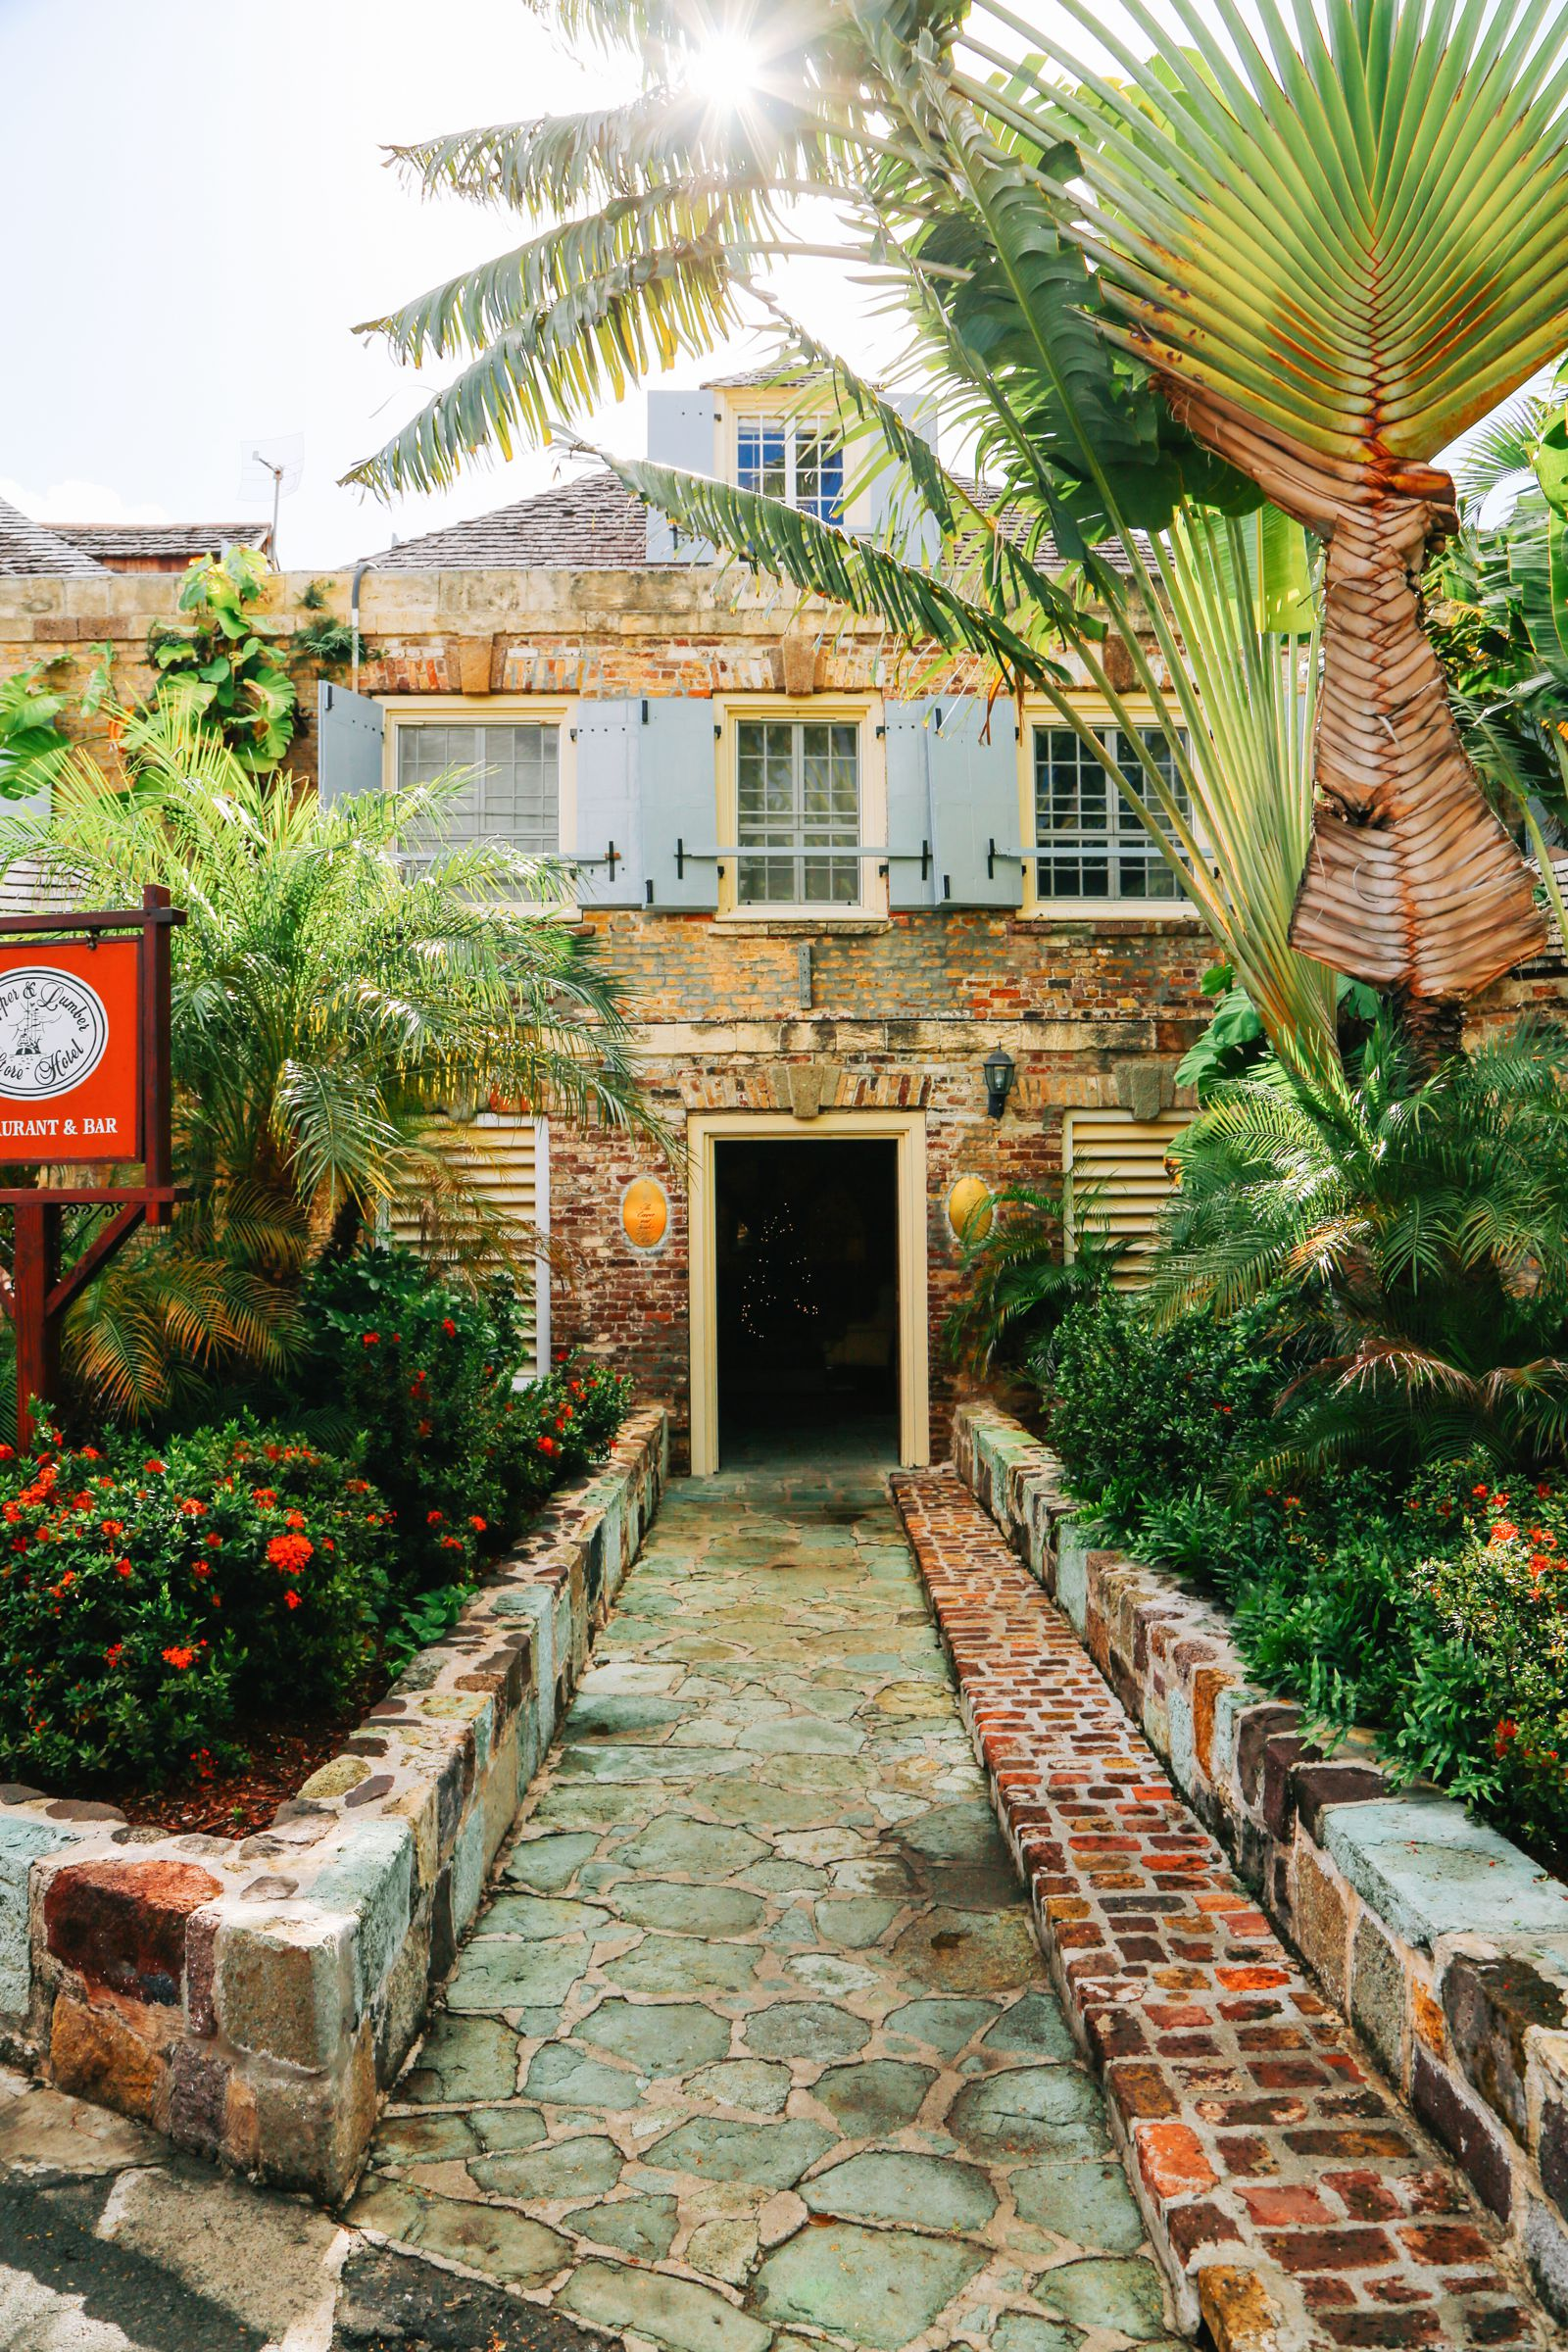 Exploring The Caribbean Island Of Antigua By Land - Part 1 (2)